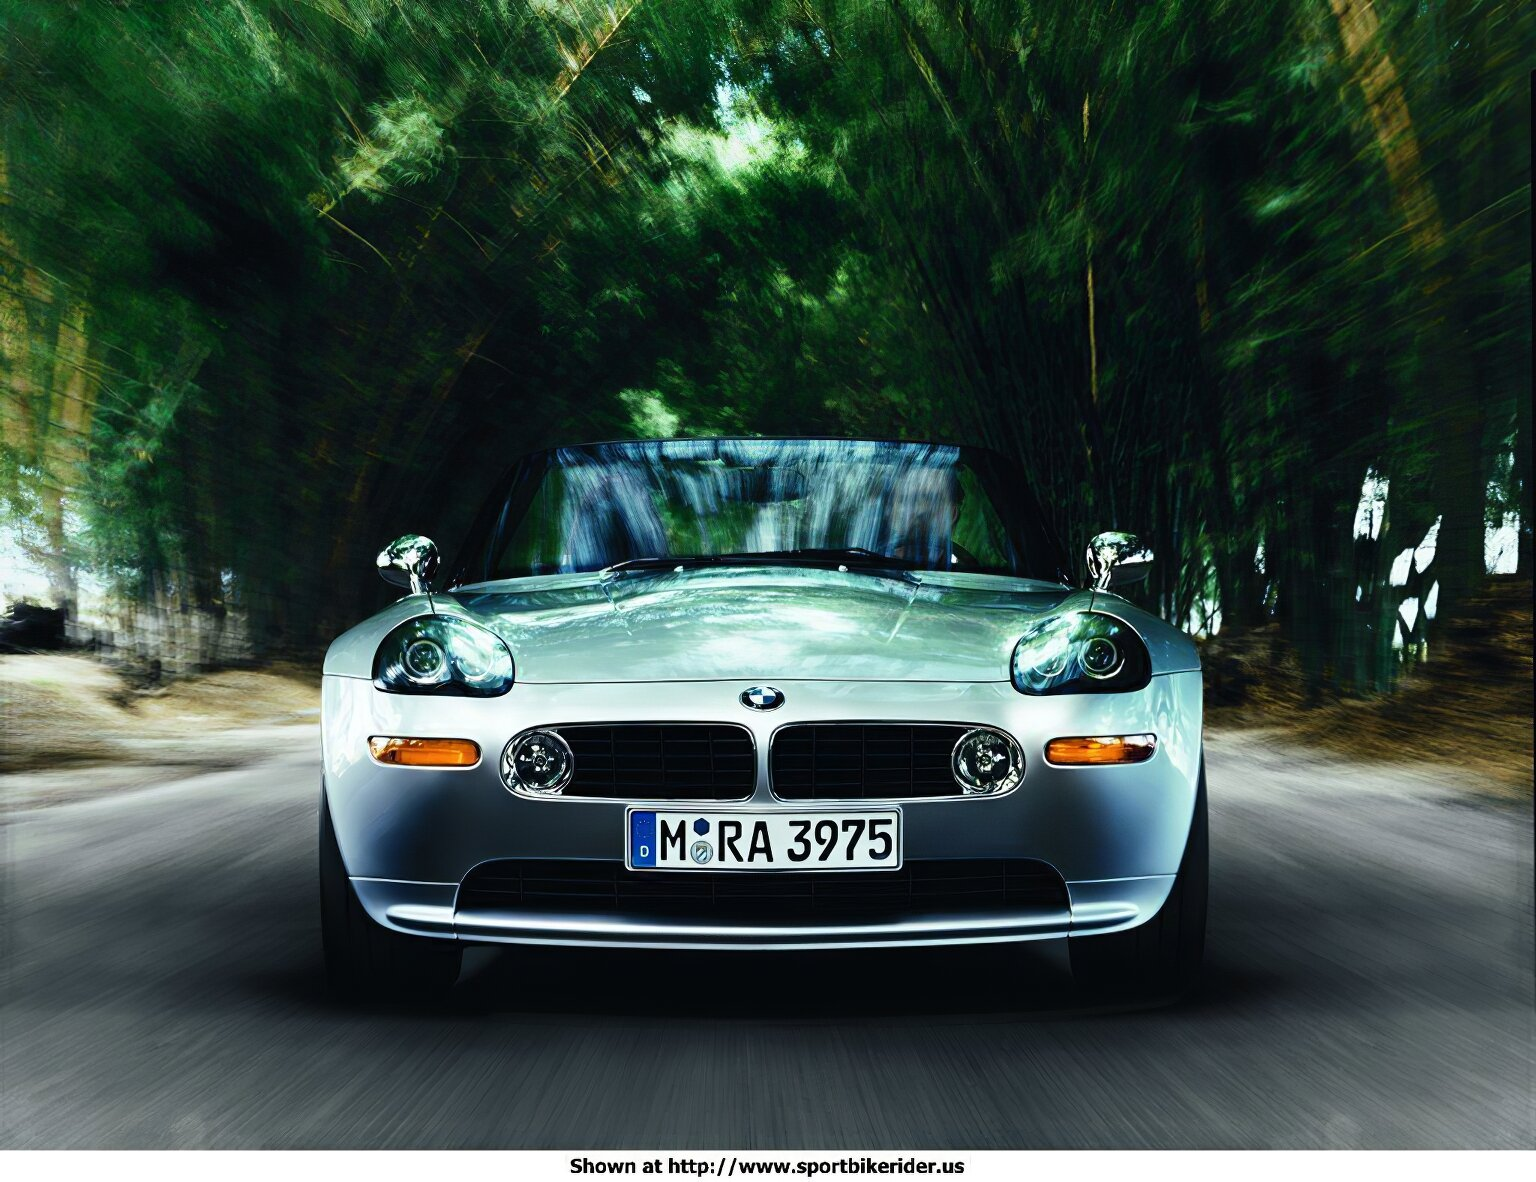 This is a new Z8 - BMW Z8 - ID: 1016